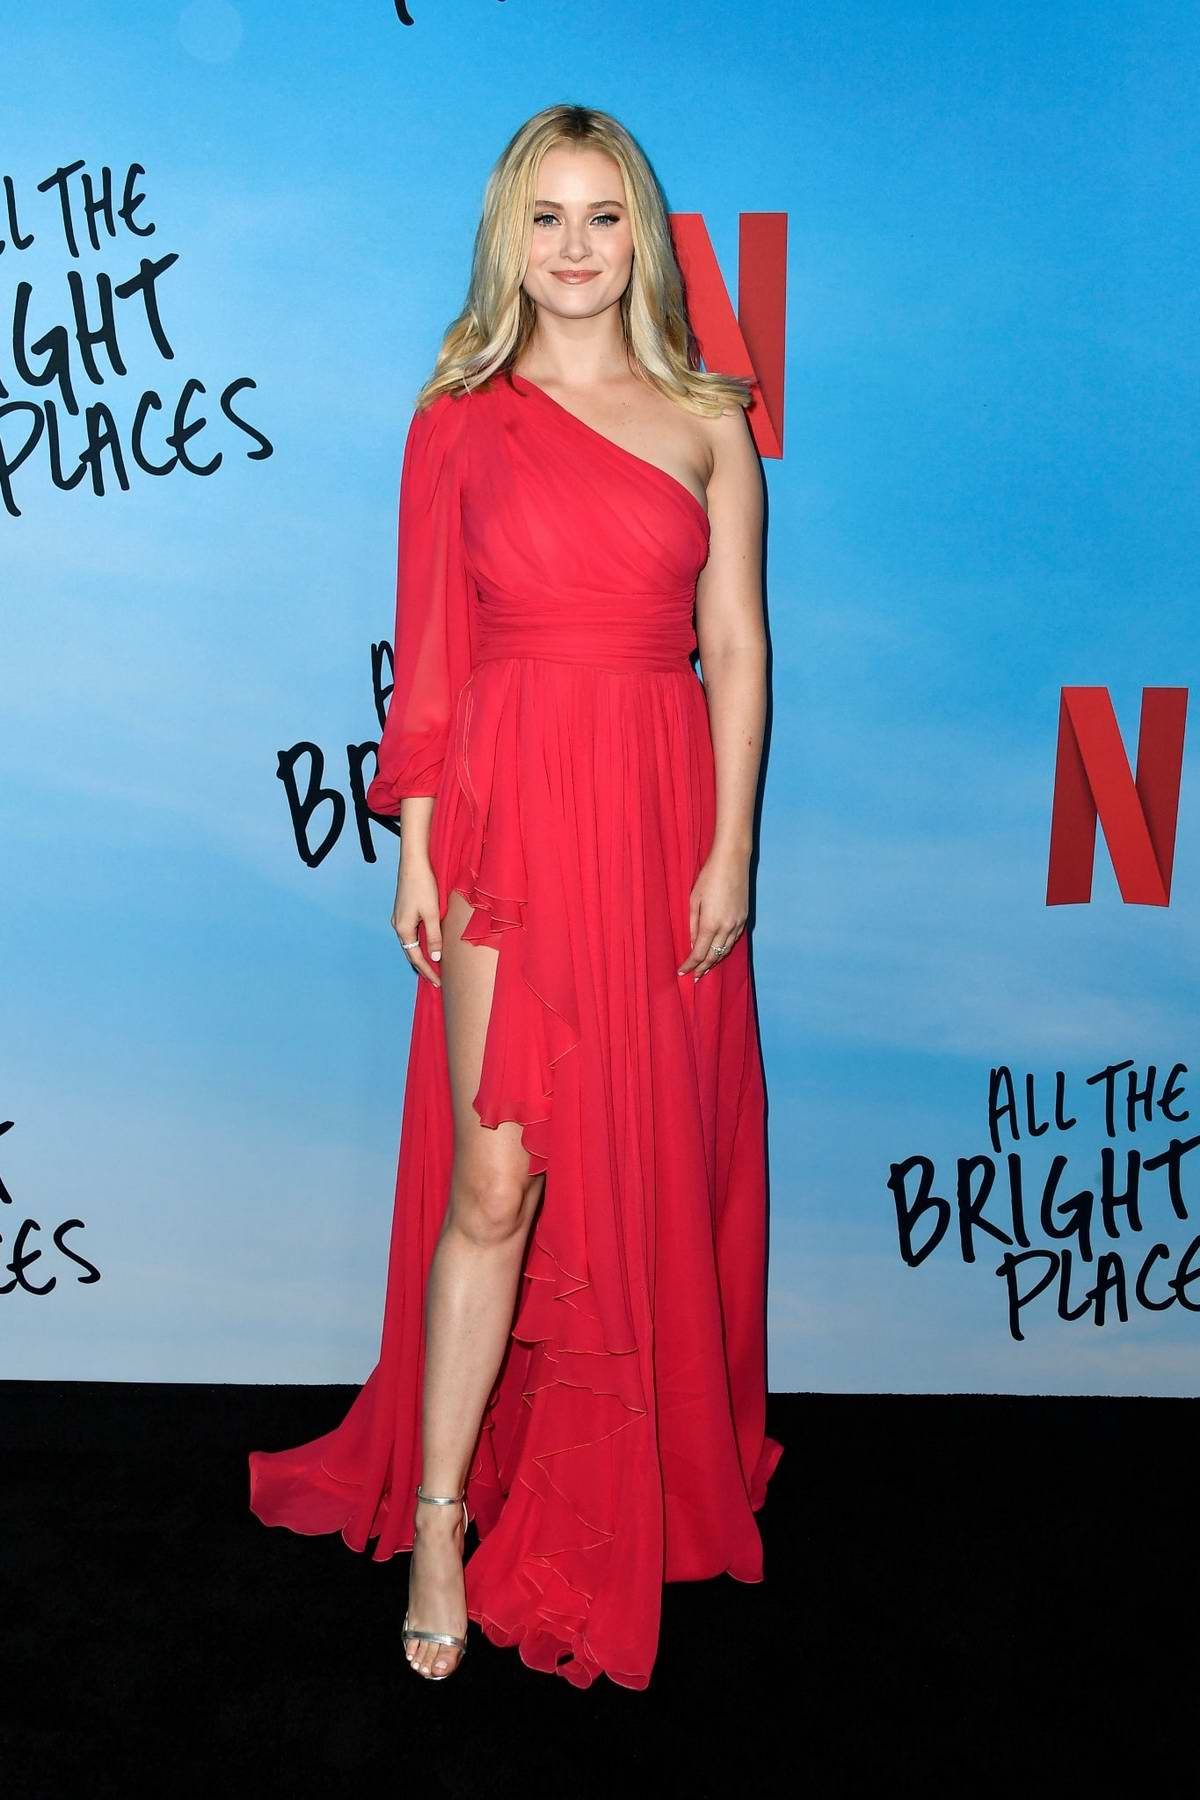 Virginia Gardner attends the Special Screening of 'All The Bright Places' at ArcLight Hollywood in Hollywood, California